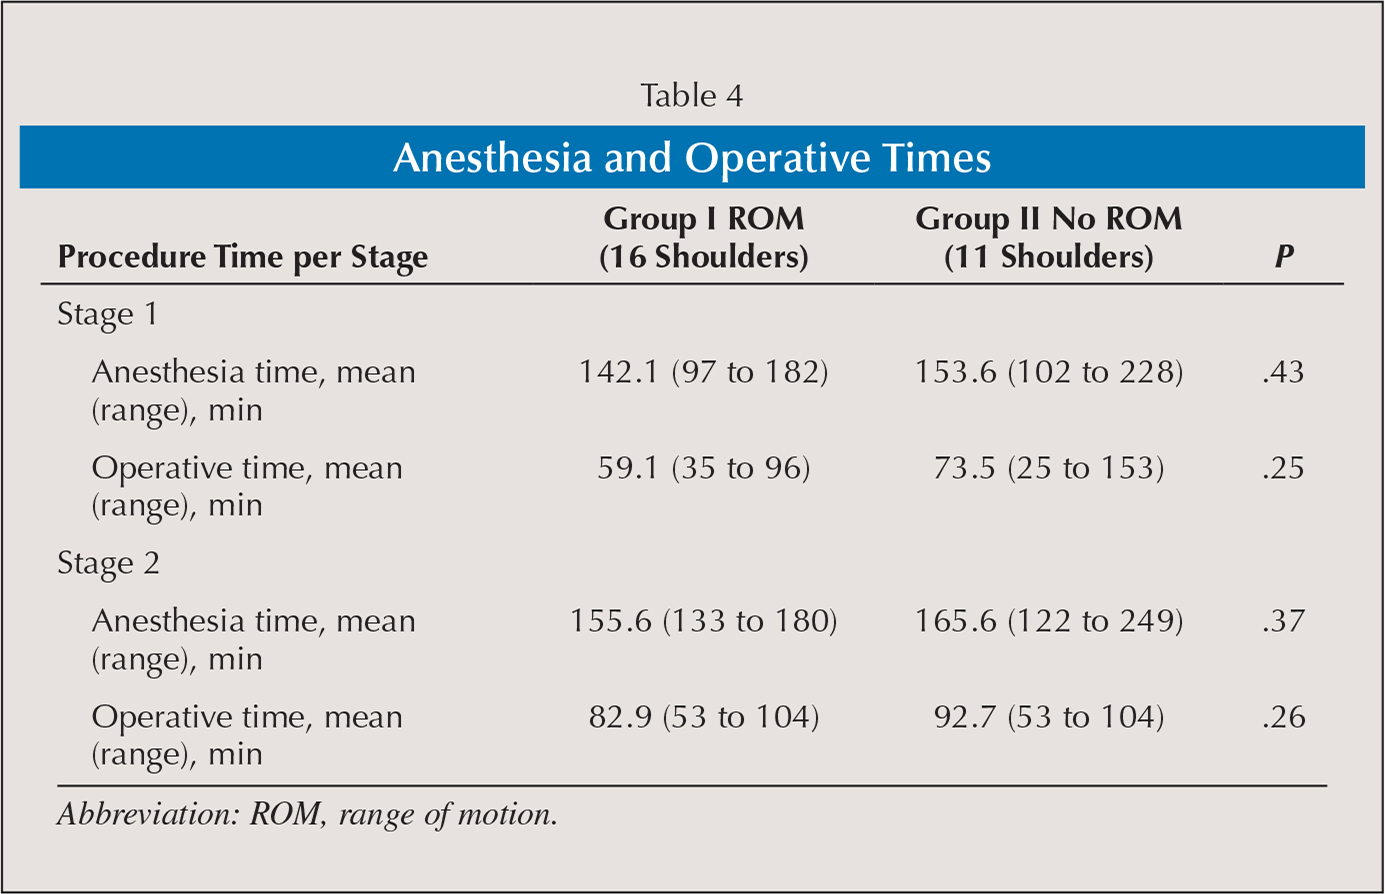 Anesthesia and Operative Times